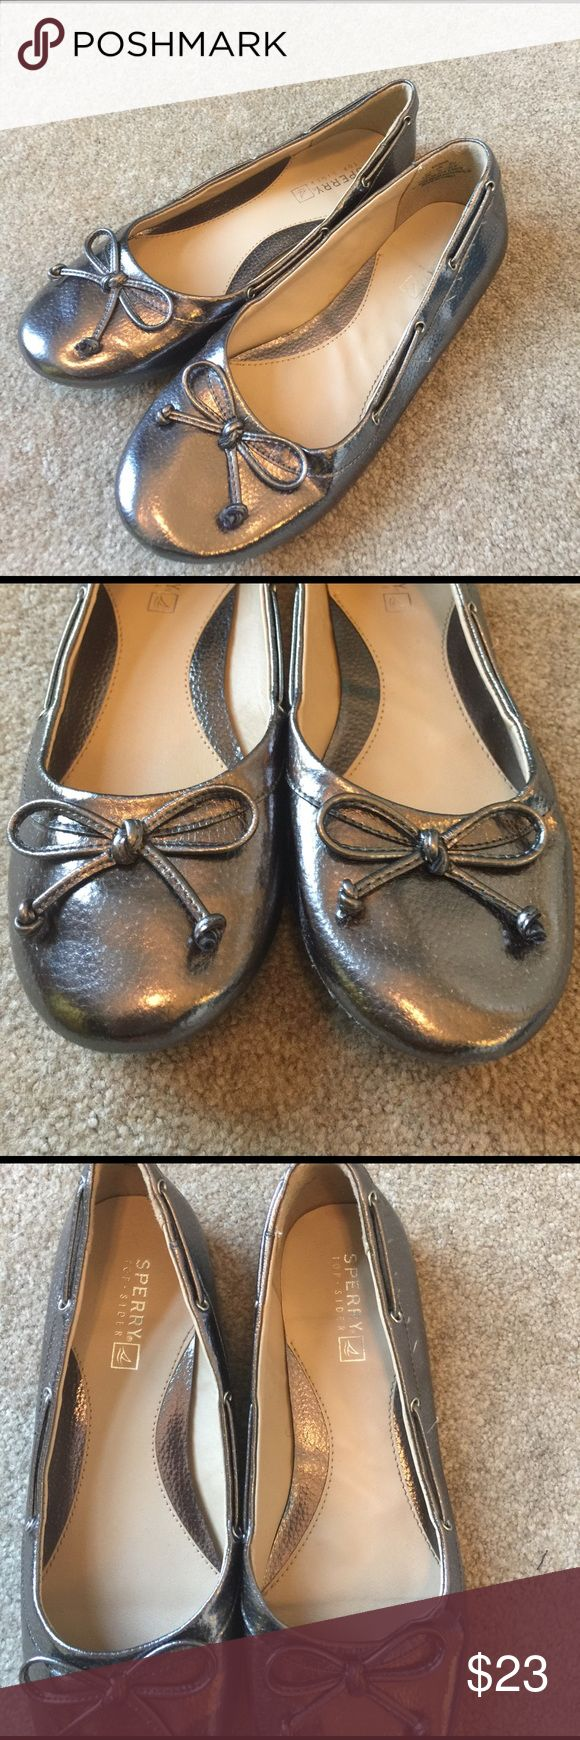 Girls Sperry ballet flats In excellent condition. All man-made material. Sperry Top-Sider Shoes